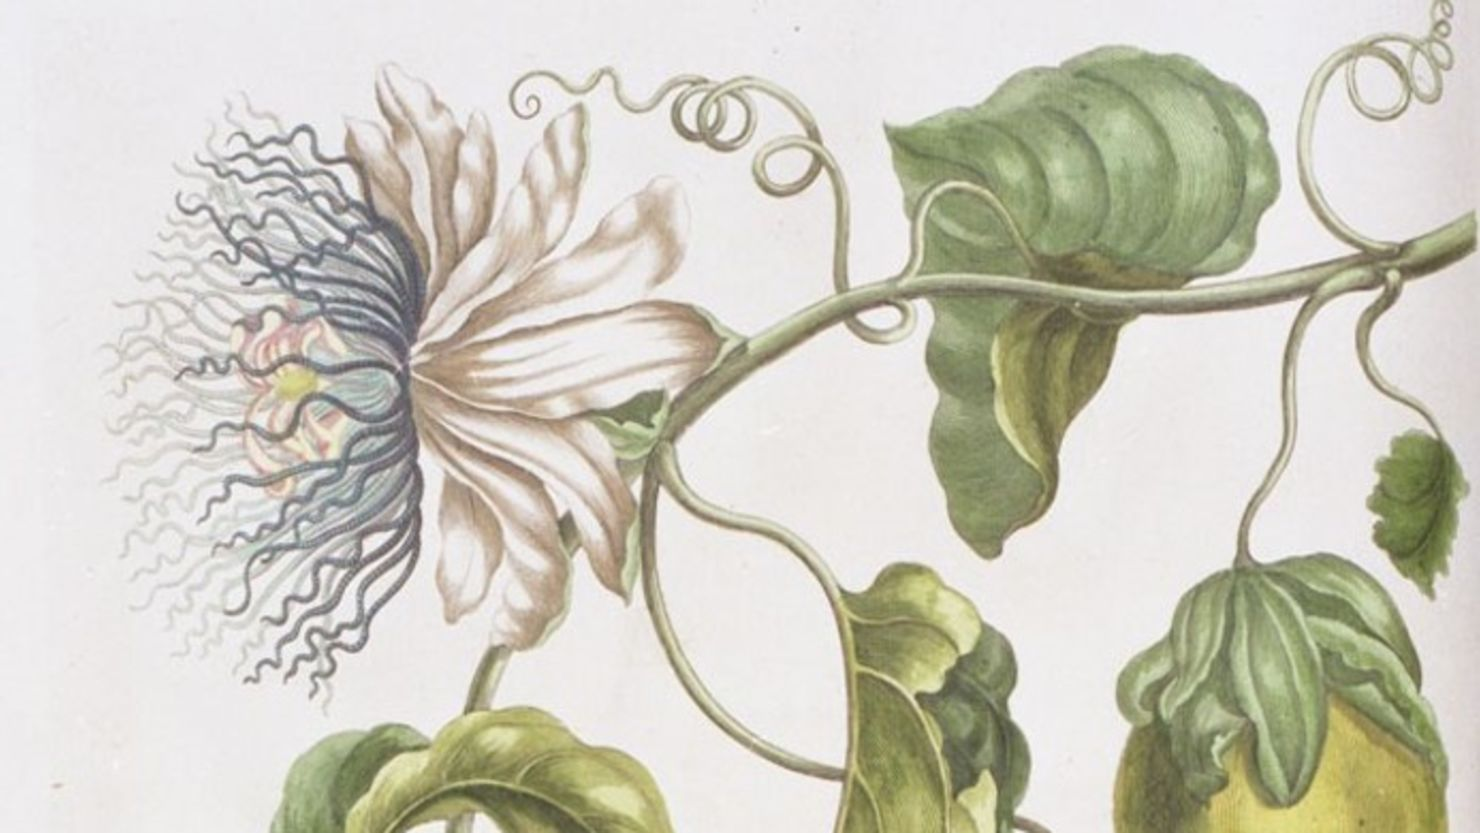 Plant illustration by Maria Sybilla Merian